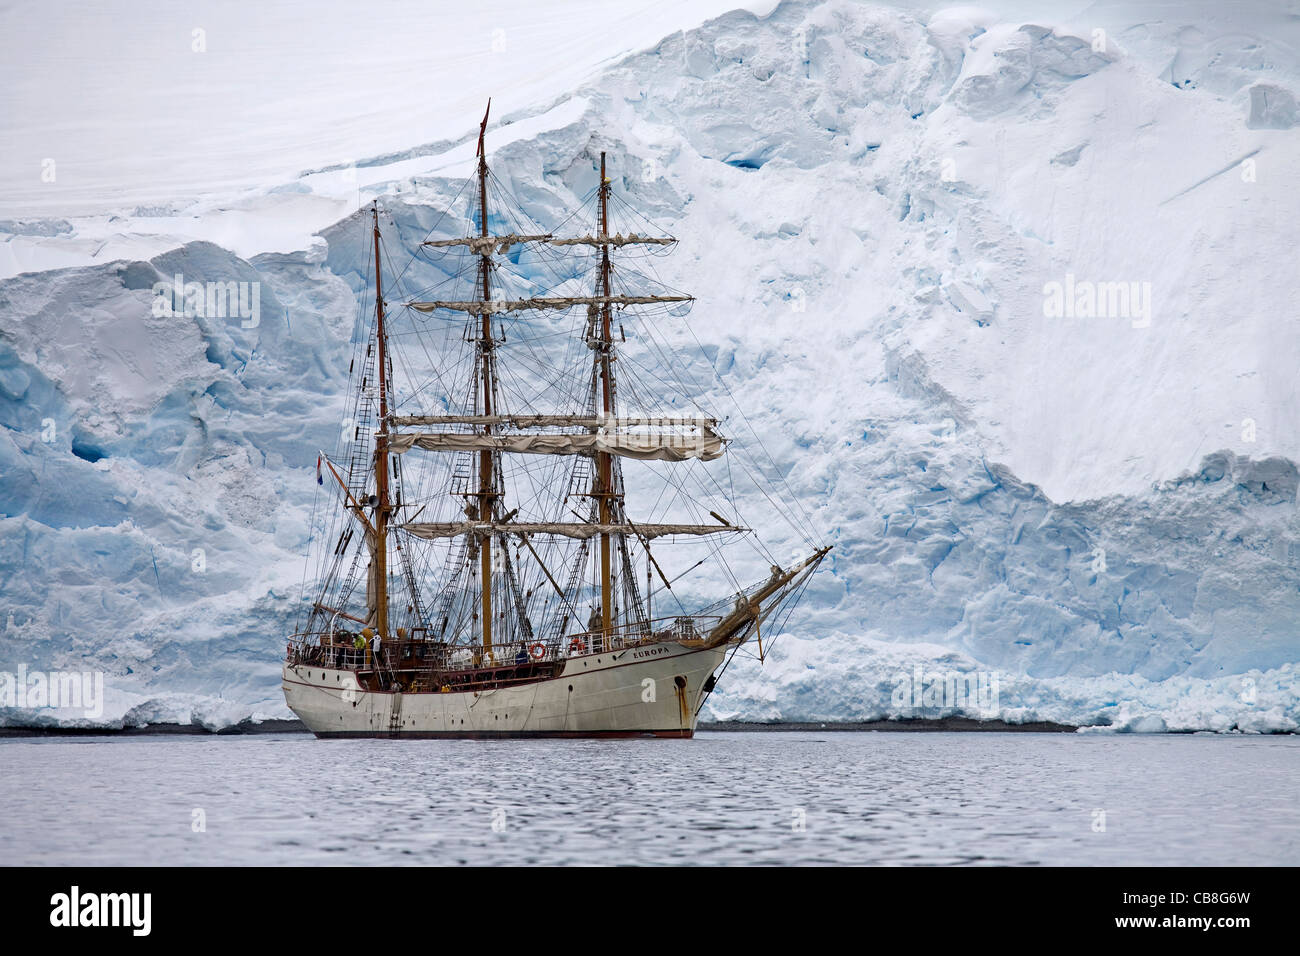 The tallship / three-master Europa, a three-masted barque in front of a giant glacier wall in Antarctica - Stock Image